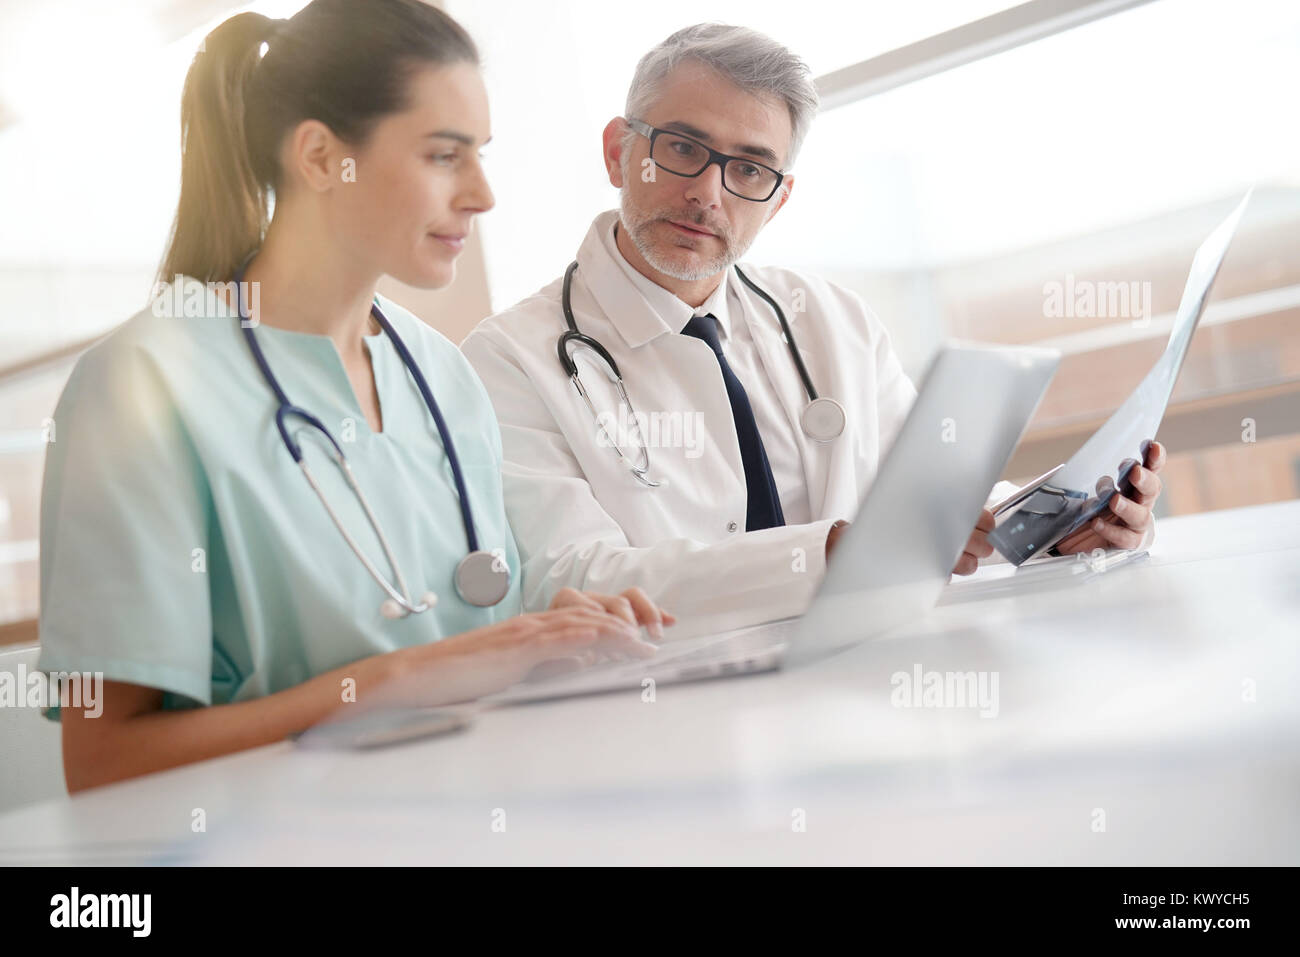 Doctor and nurse in office working on medical report - Stock Image